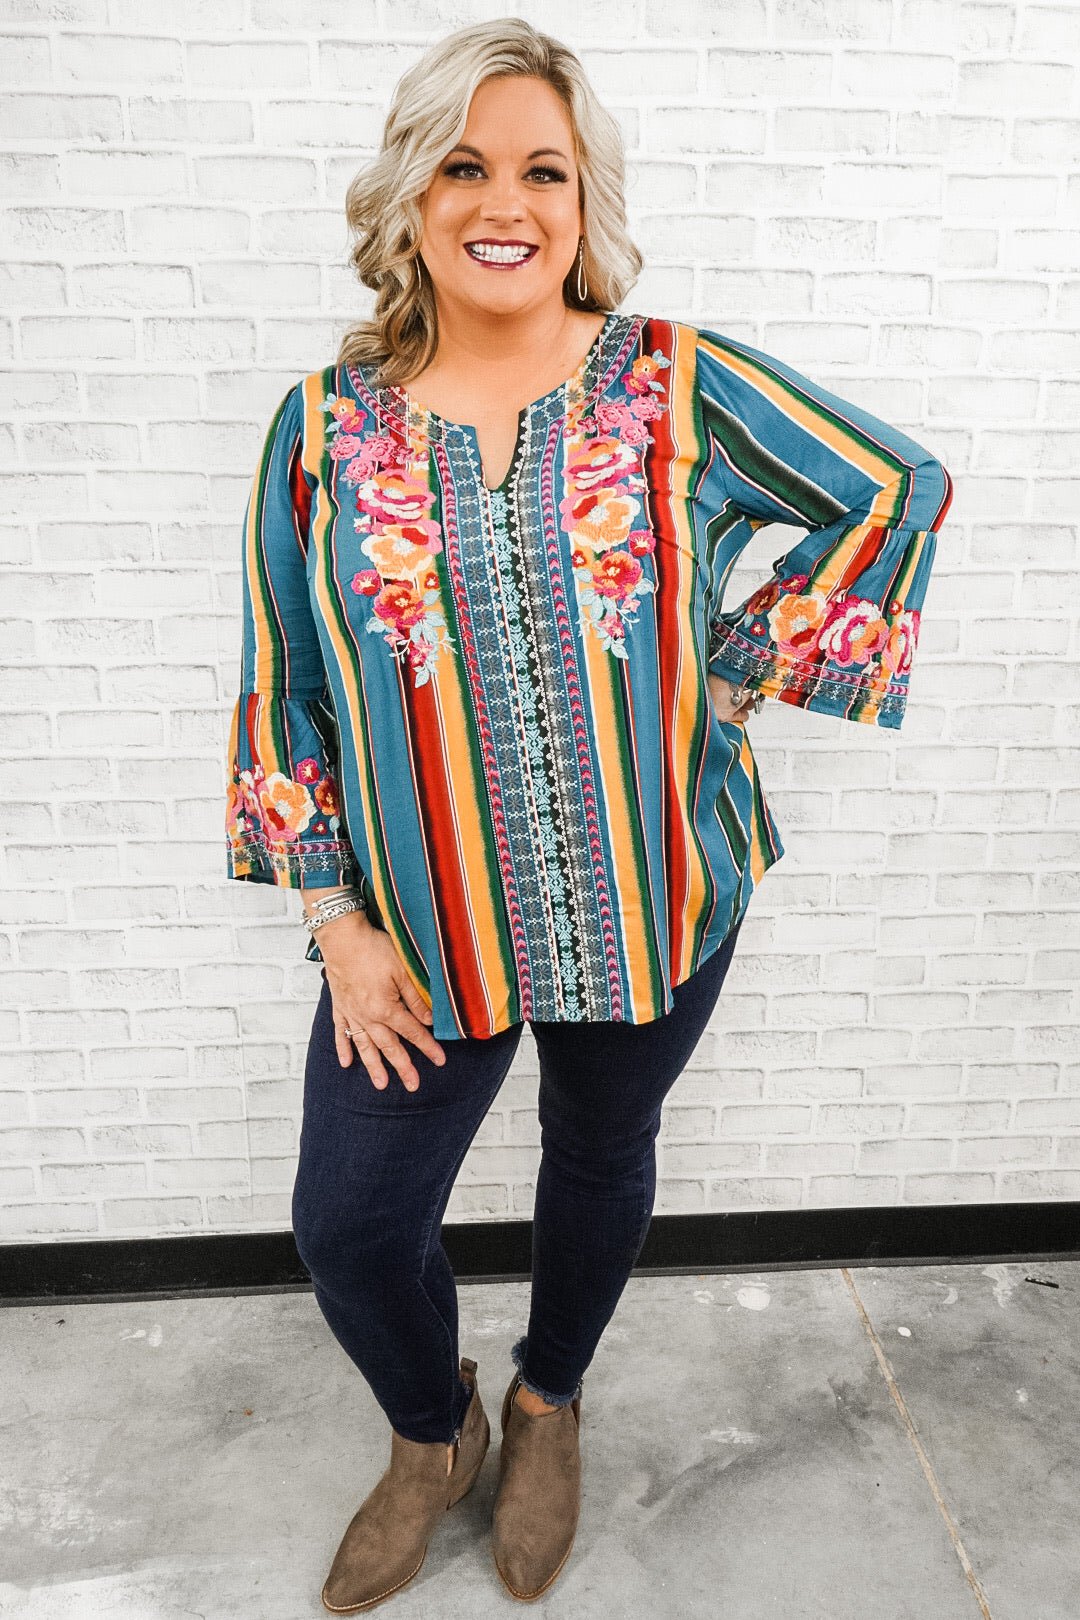 Party Stripes with Floral Embroidery Top